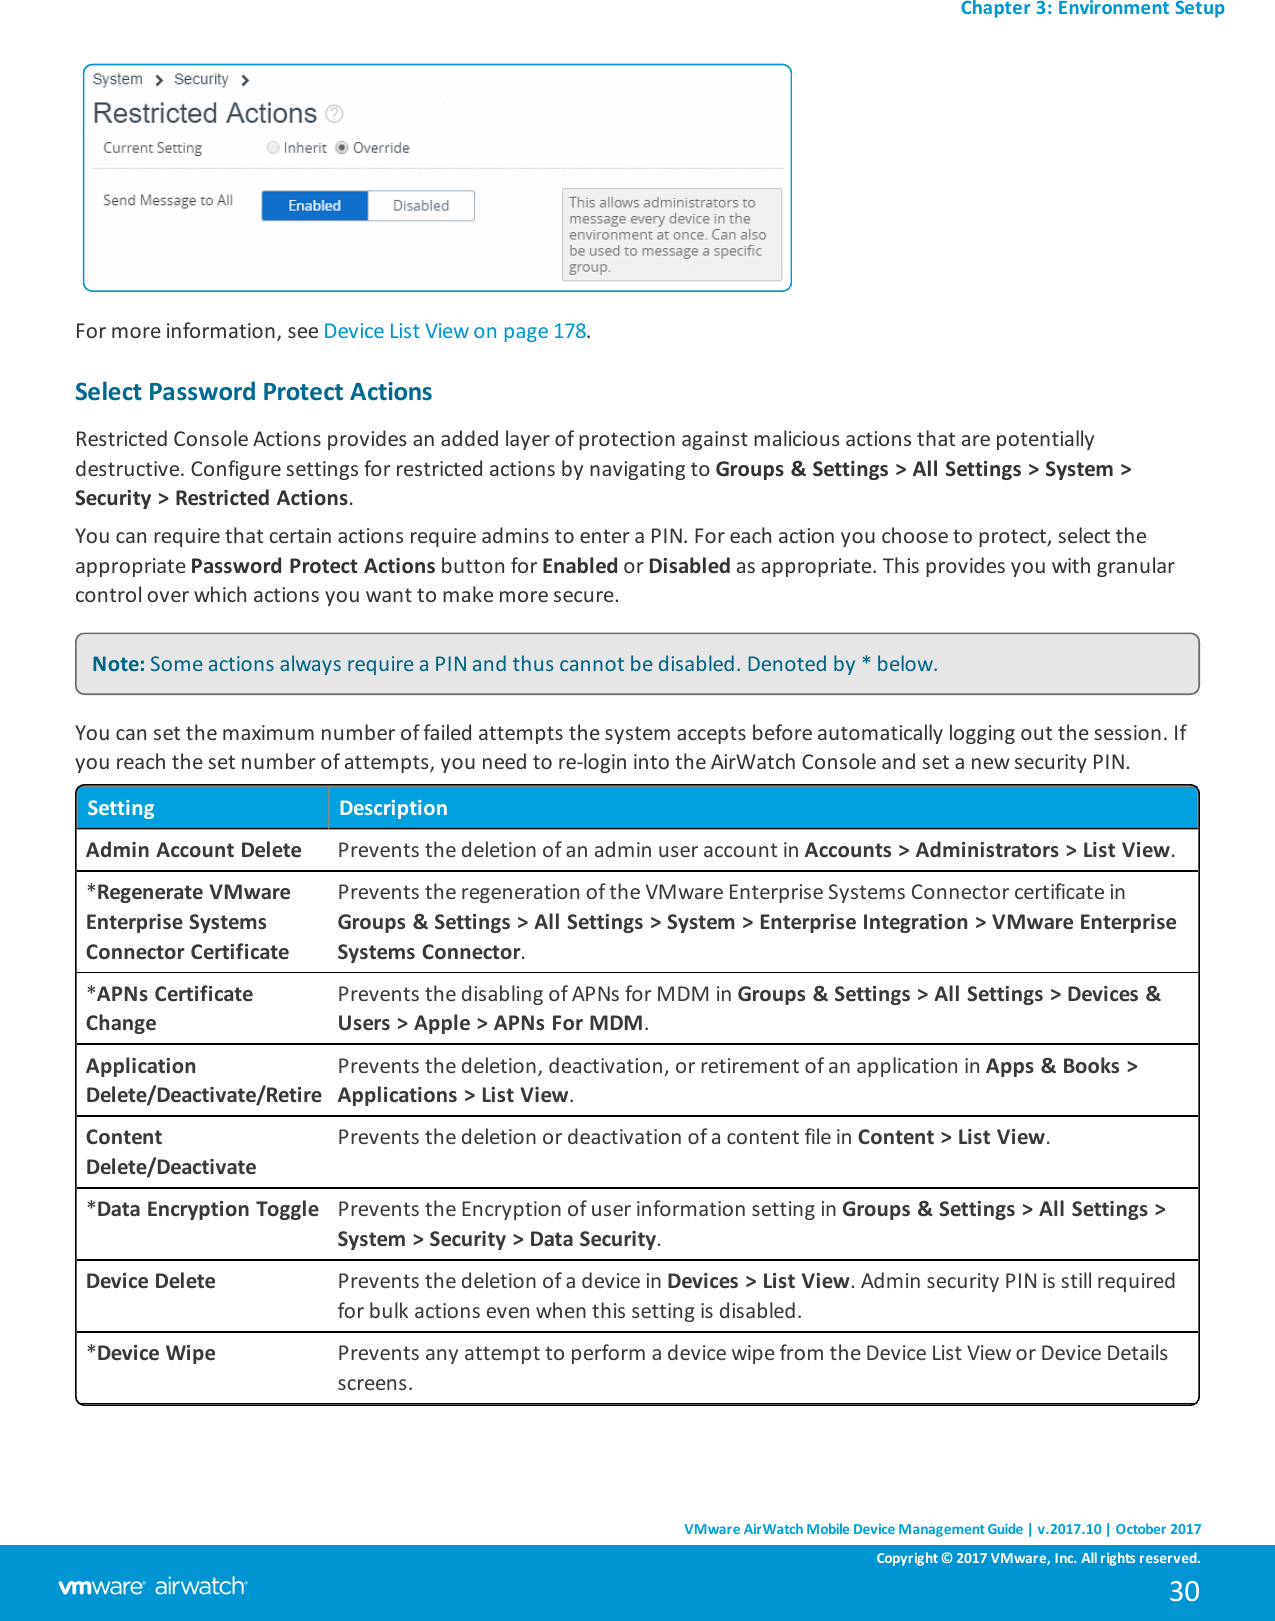 VMware AirWatch Mobile Device Management Guide V9 1